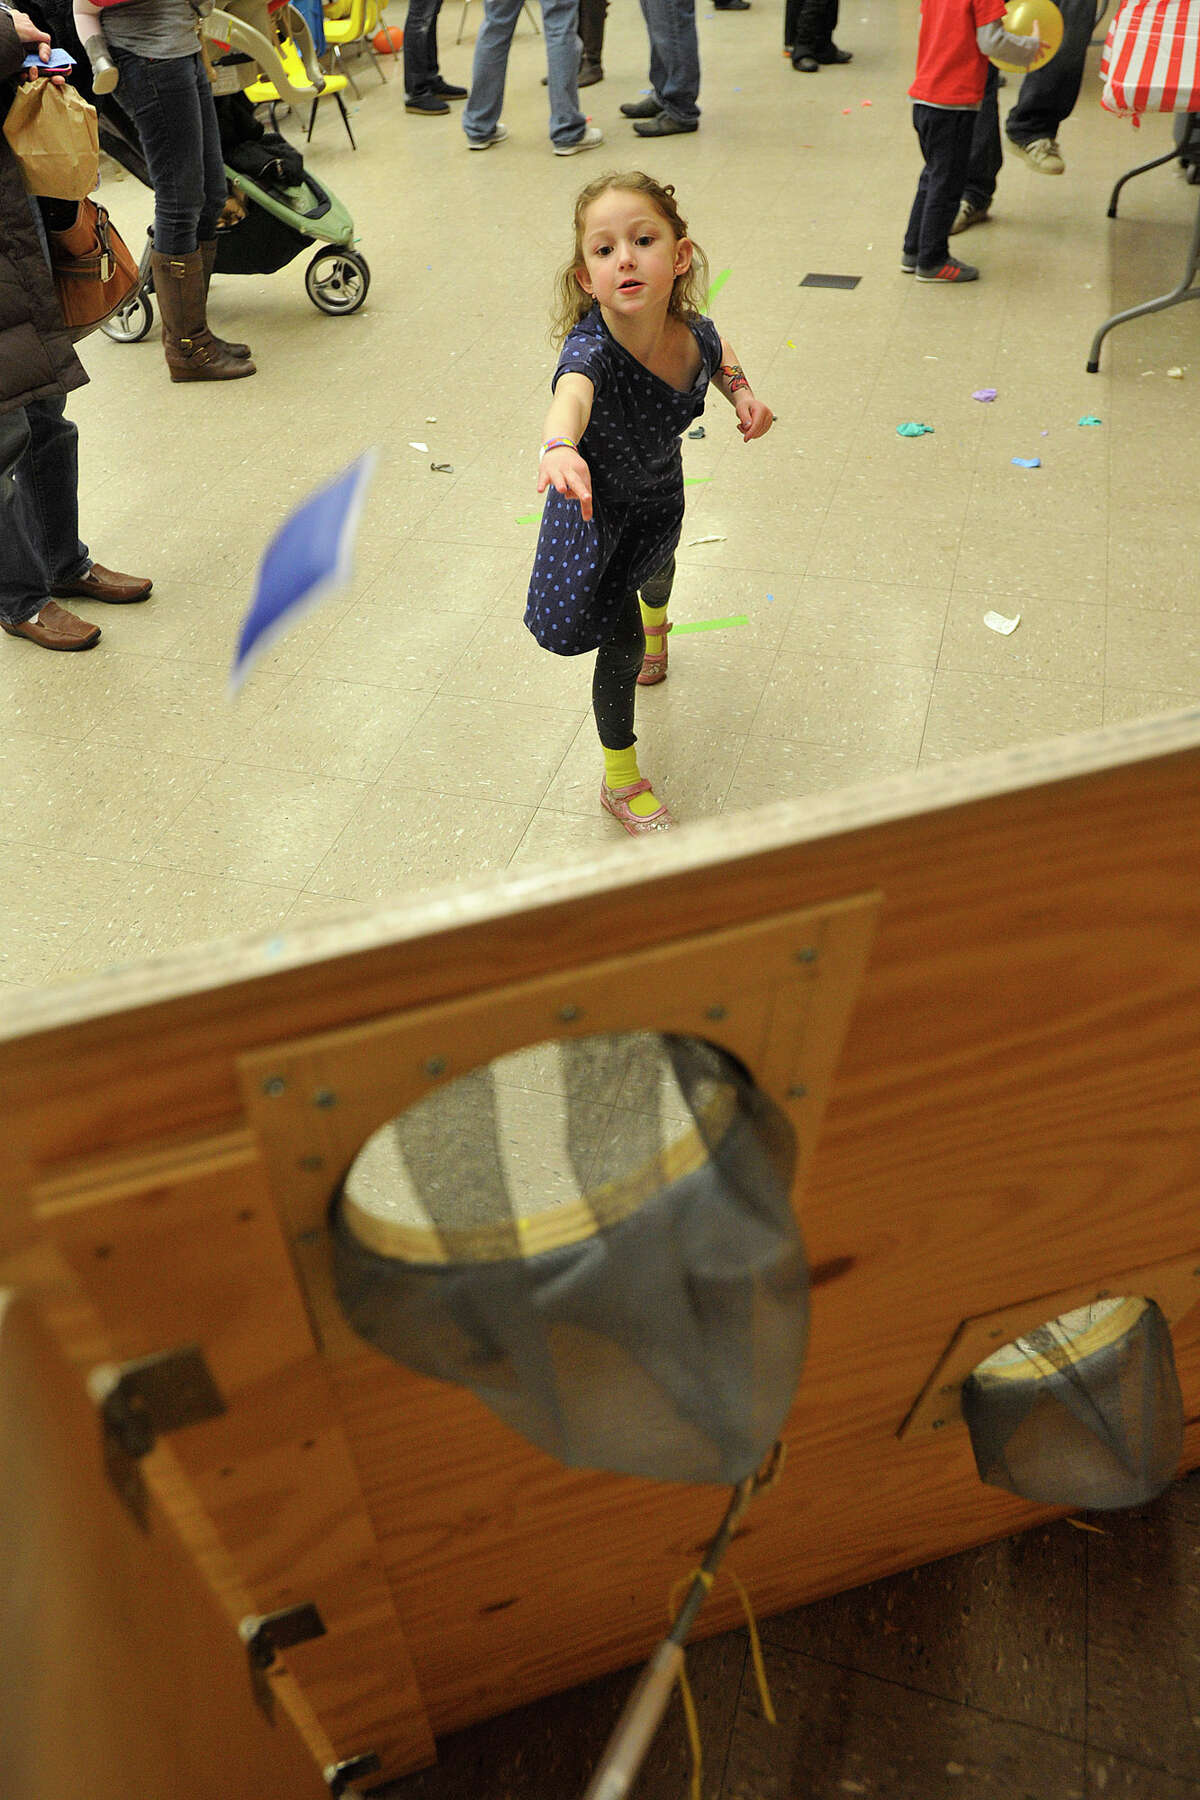 Rebecca Bear throws a bean bag at the bean bag toss station during the 22nd annual JCC Purim Carnival: Under the Big Top at the Jewish Community Center in Stamford, Conn., on Sunday, March 9, 2014.